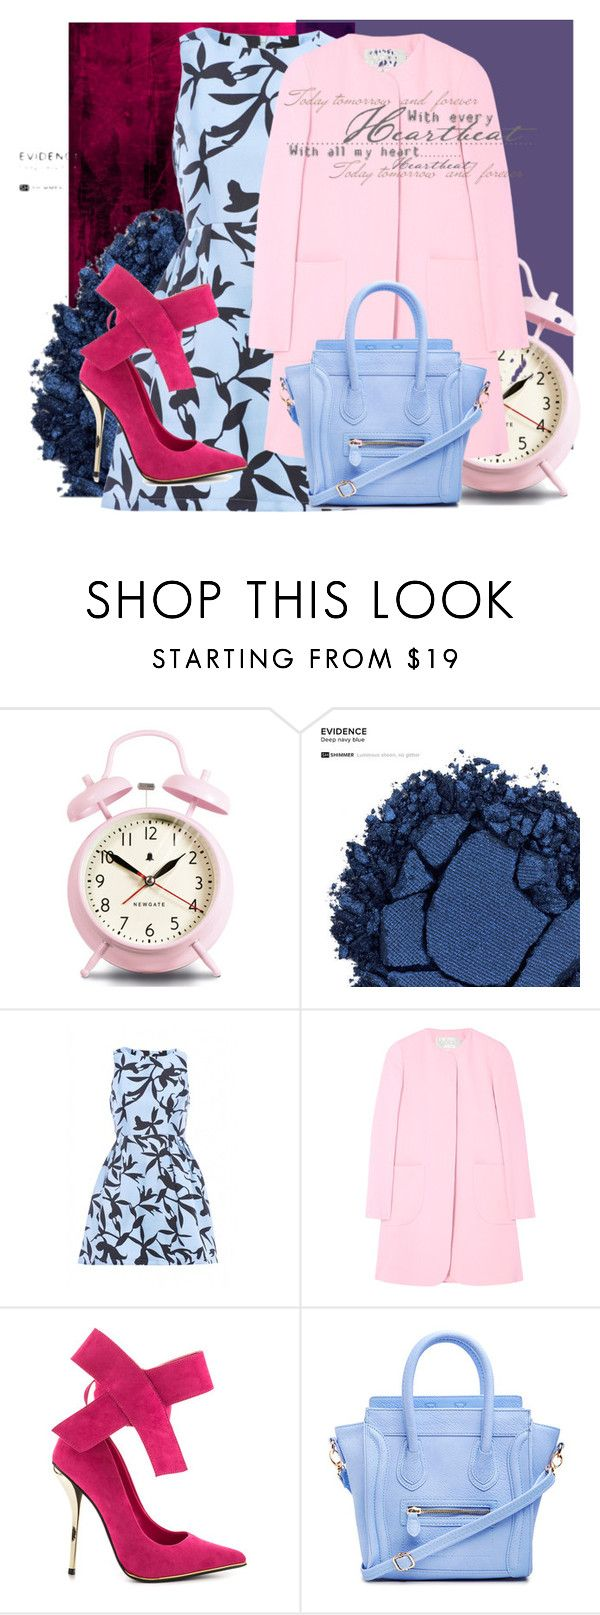 """""""simple melody"""" by iubescvara ❤ liked on Polyvore featuring Newgate, Urban Decay, AX Paris, Privileged and DailyLook"""